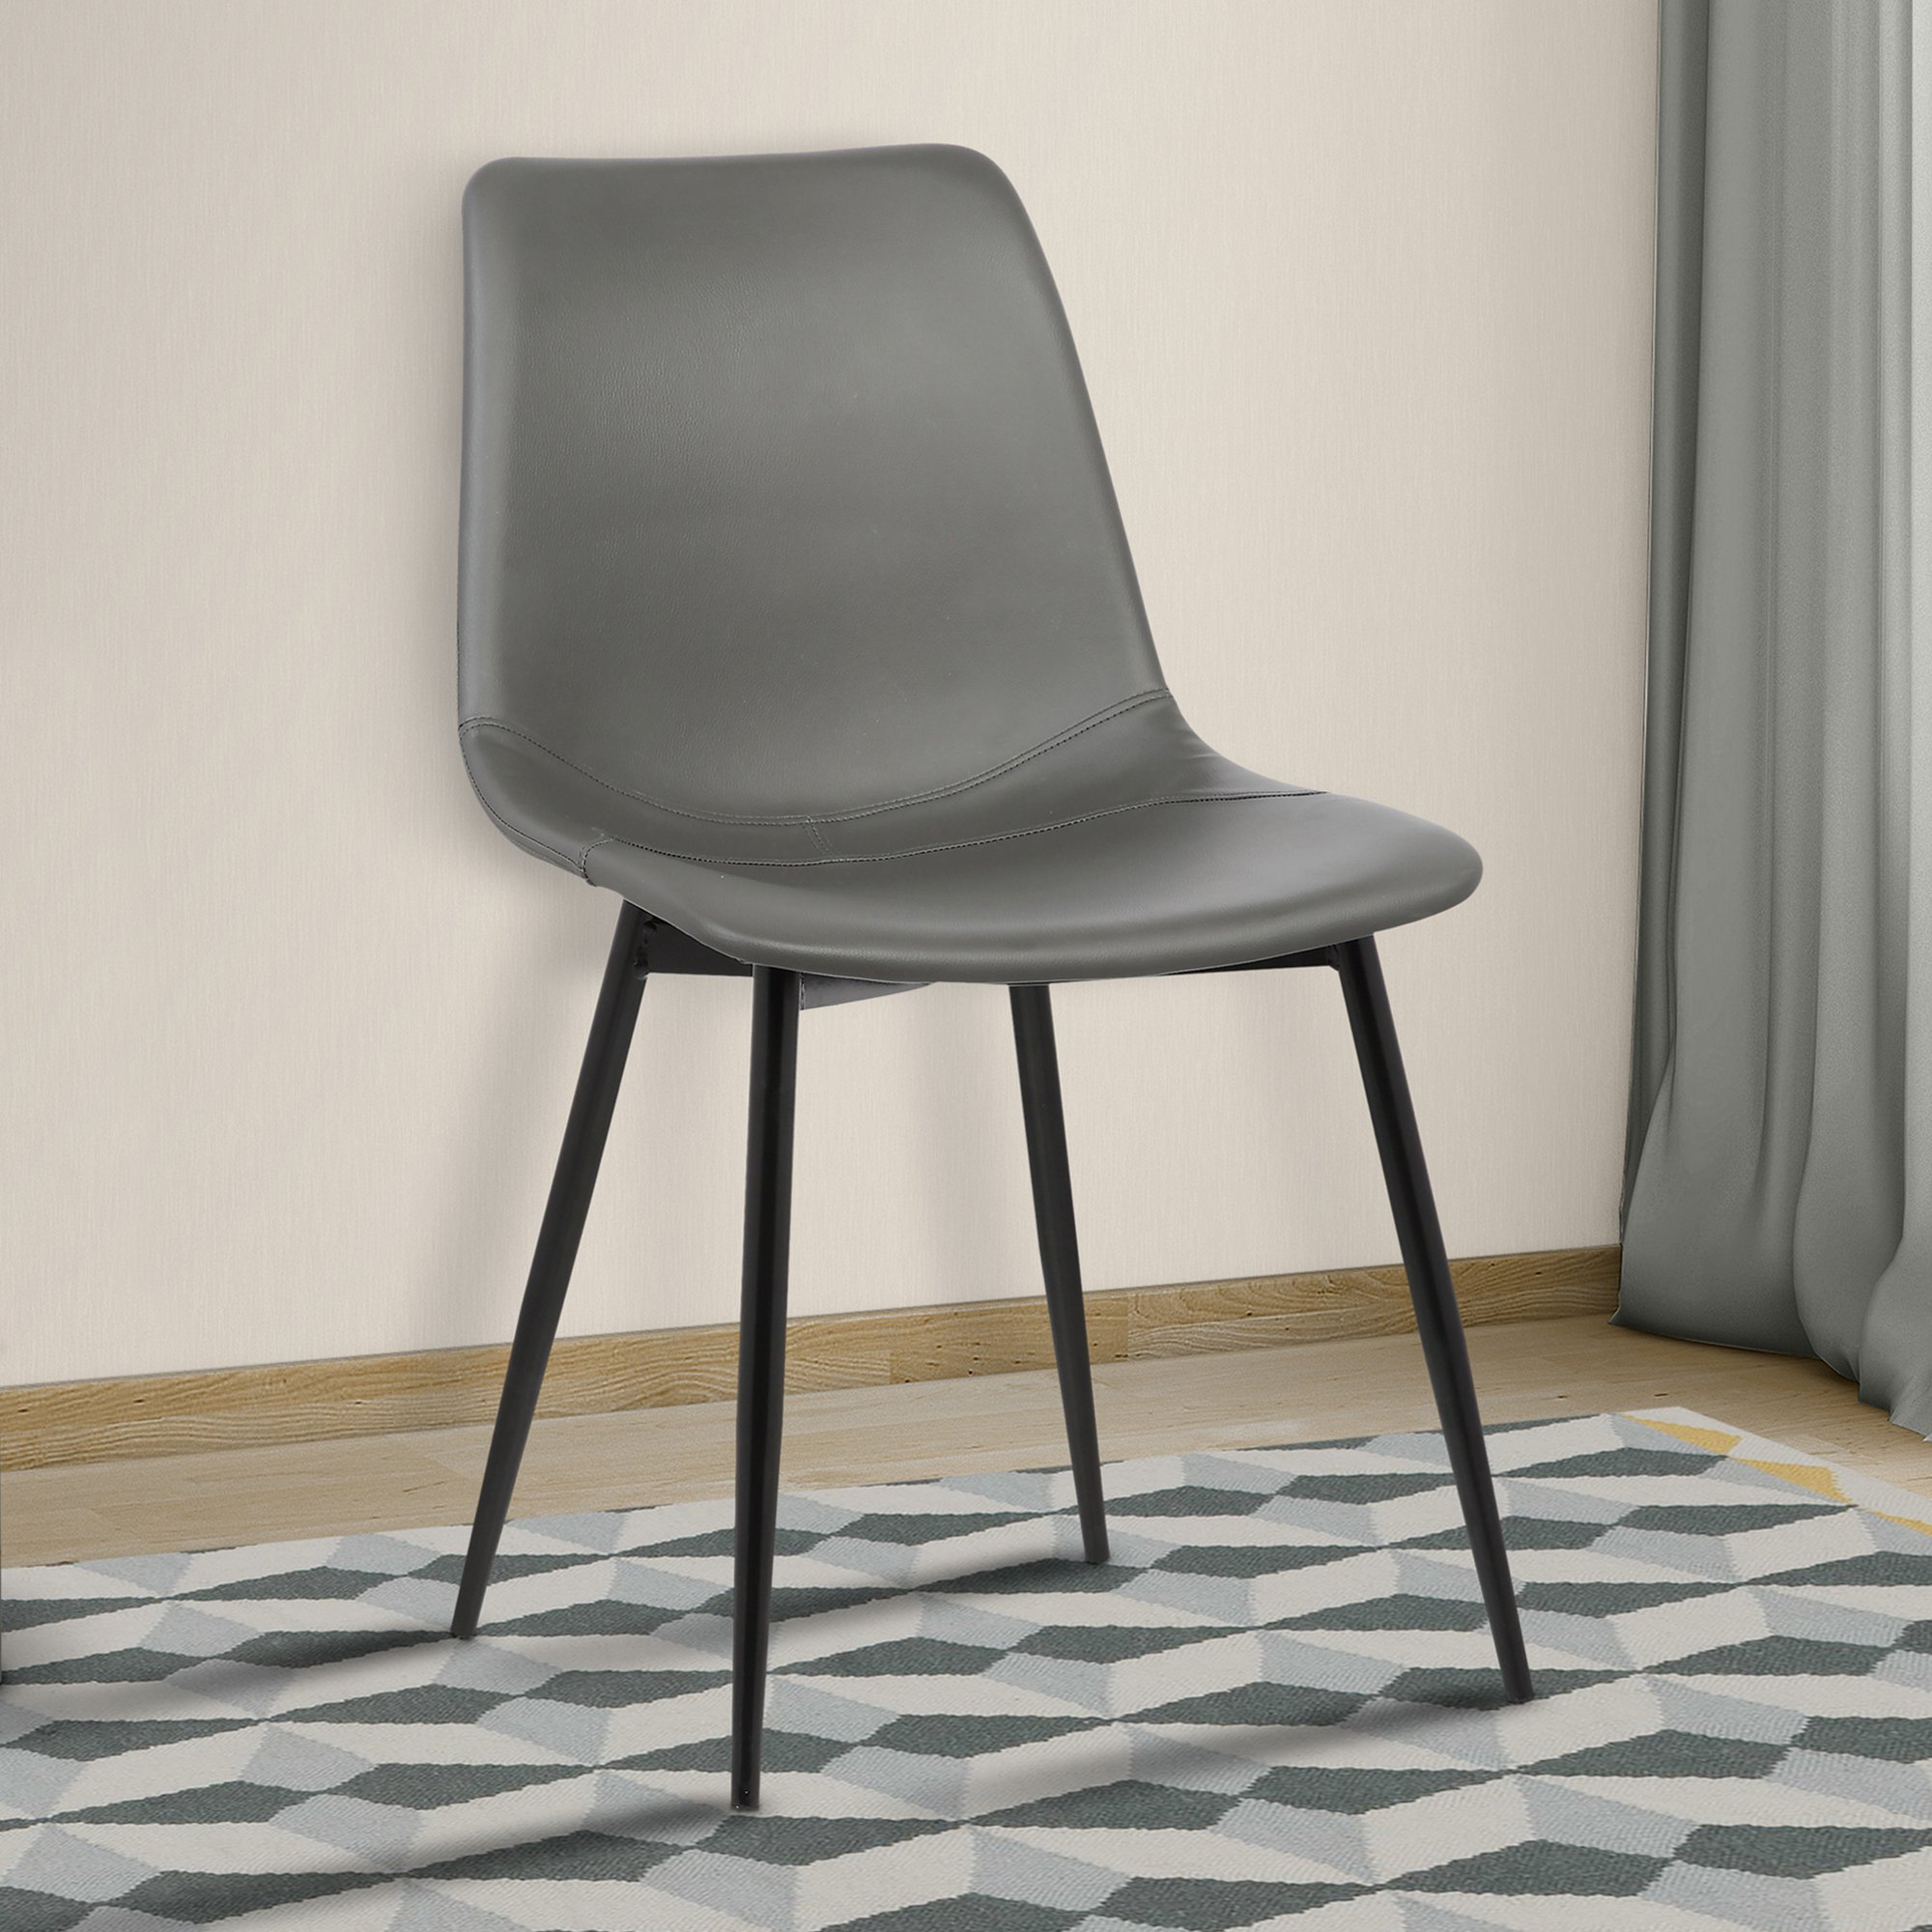 Armen Living LCMOCHGREY Monte Dining Chair in Grey Faux Leather and Auburn Bay Finish